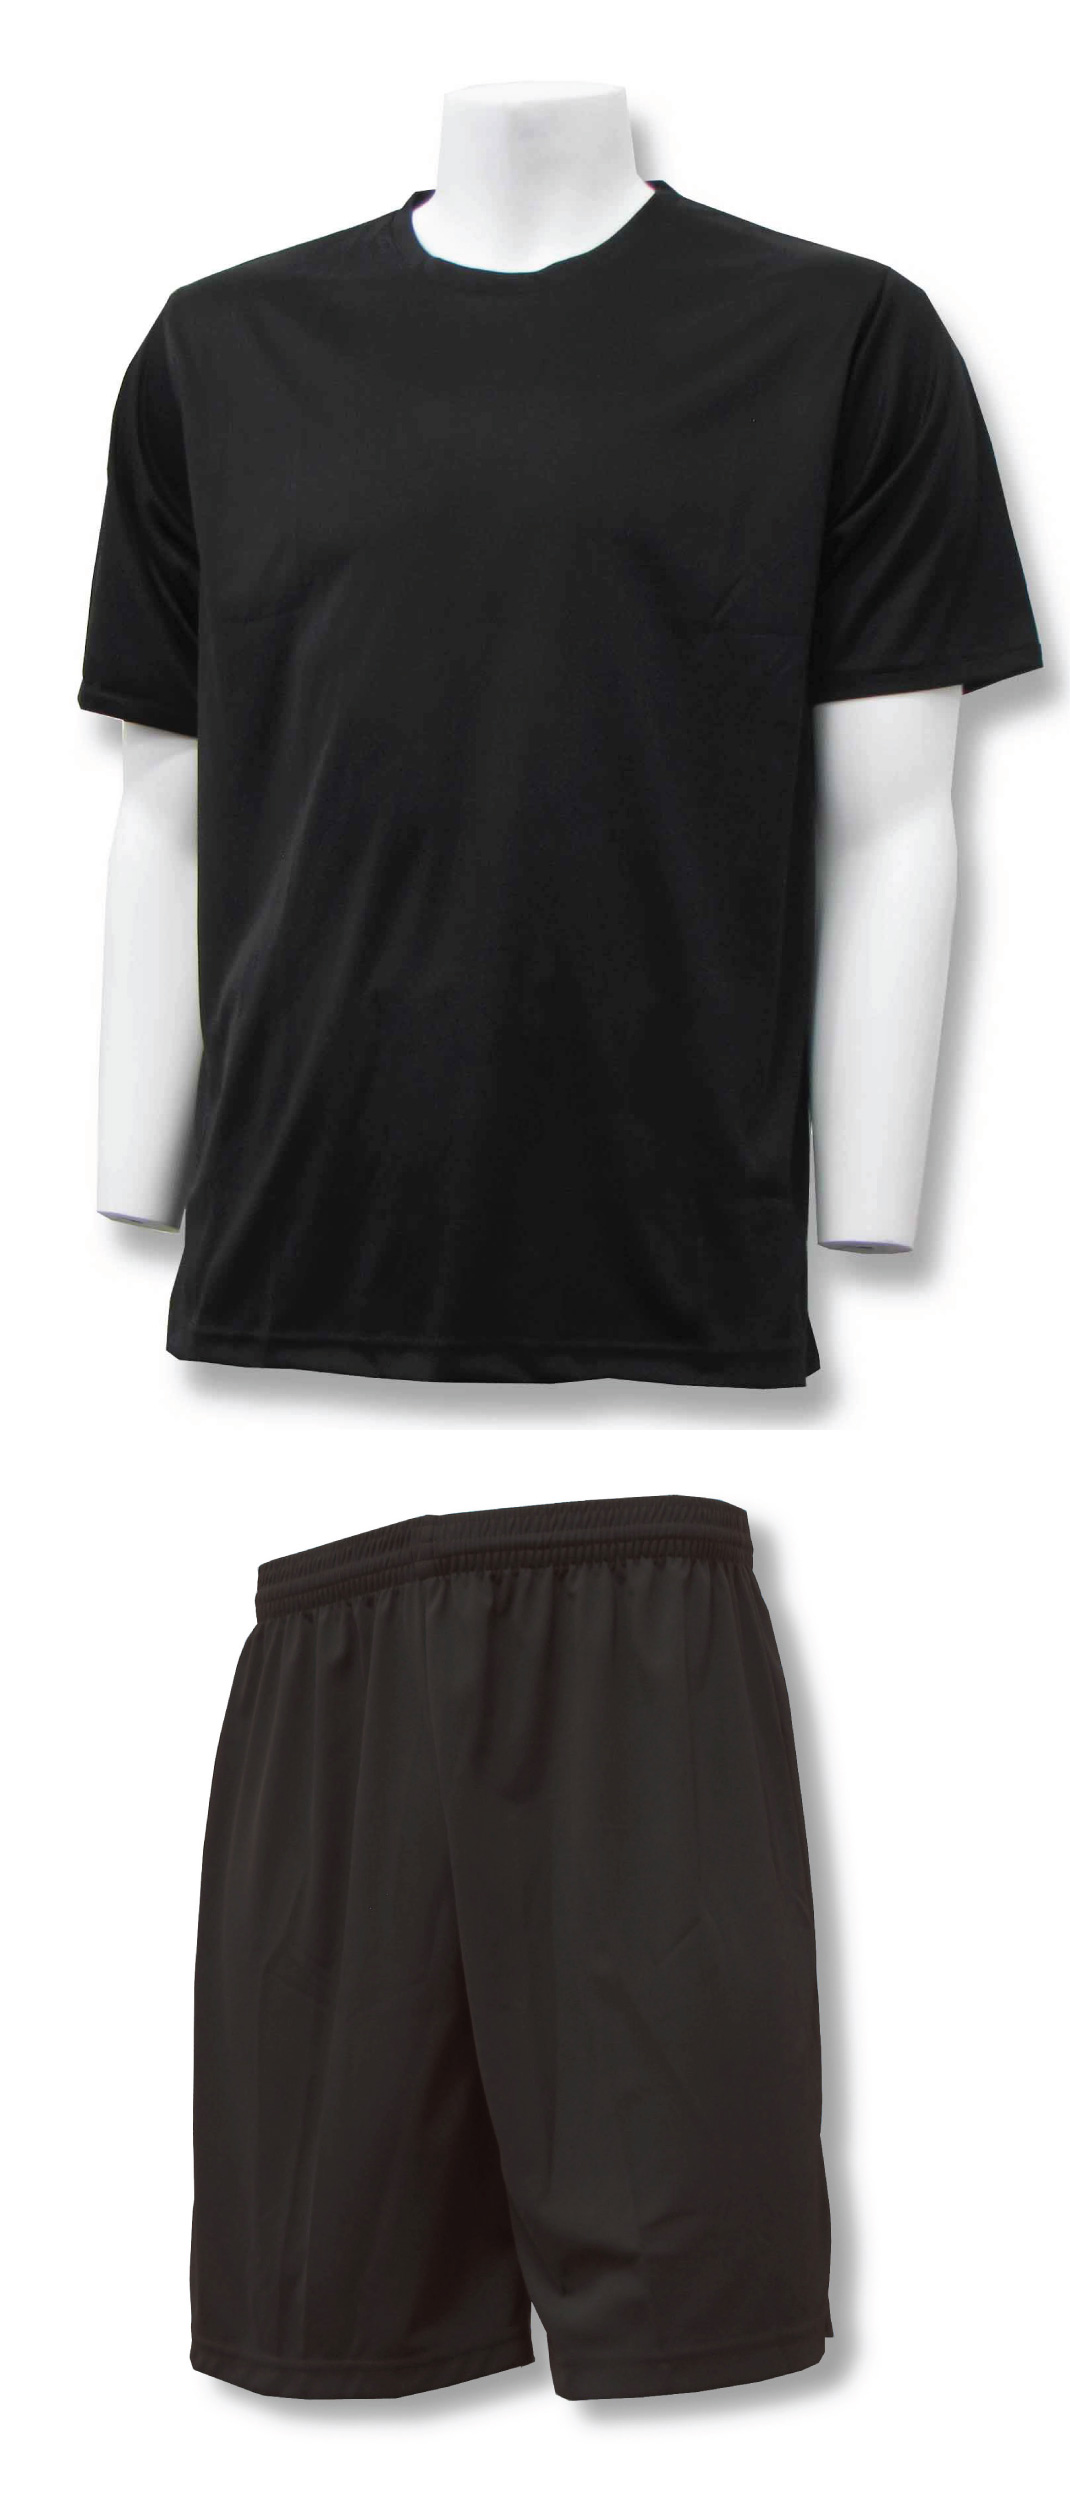 Soccer Training Uniform kit in black/black by Code Four Athletics